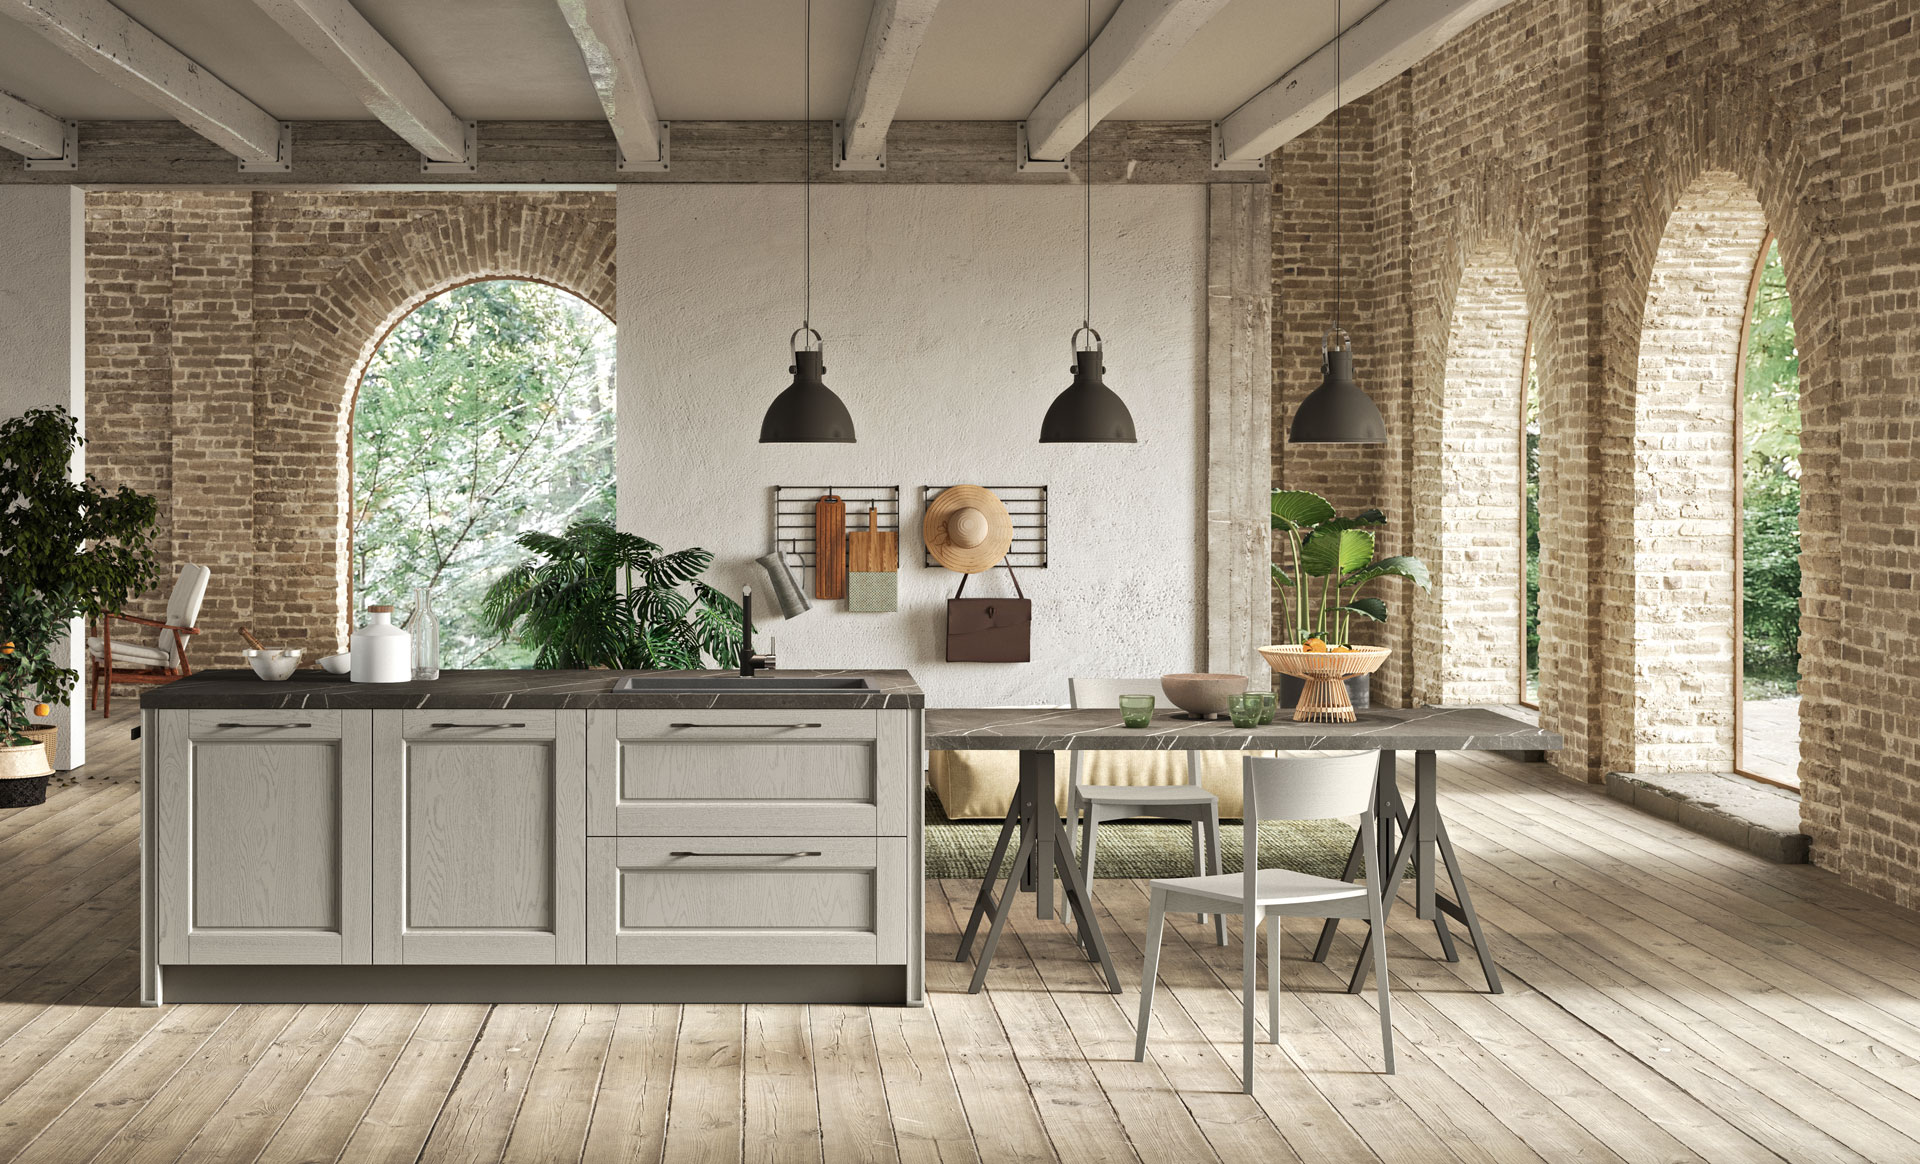 Marchi Cucine Moderne. Stunning Cheap Excelsior Homecucine Country ...